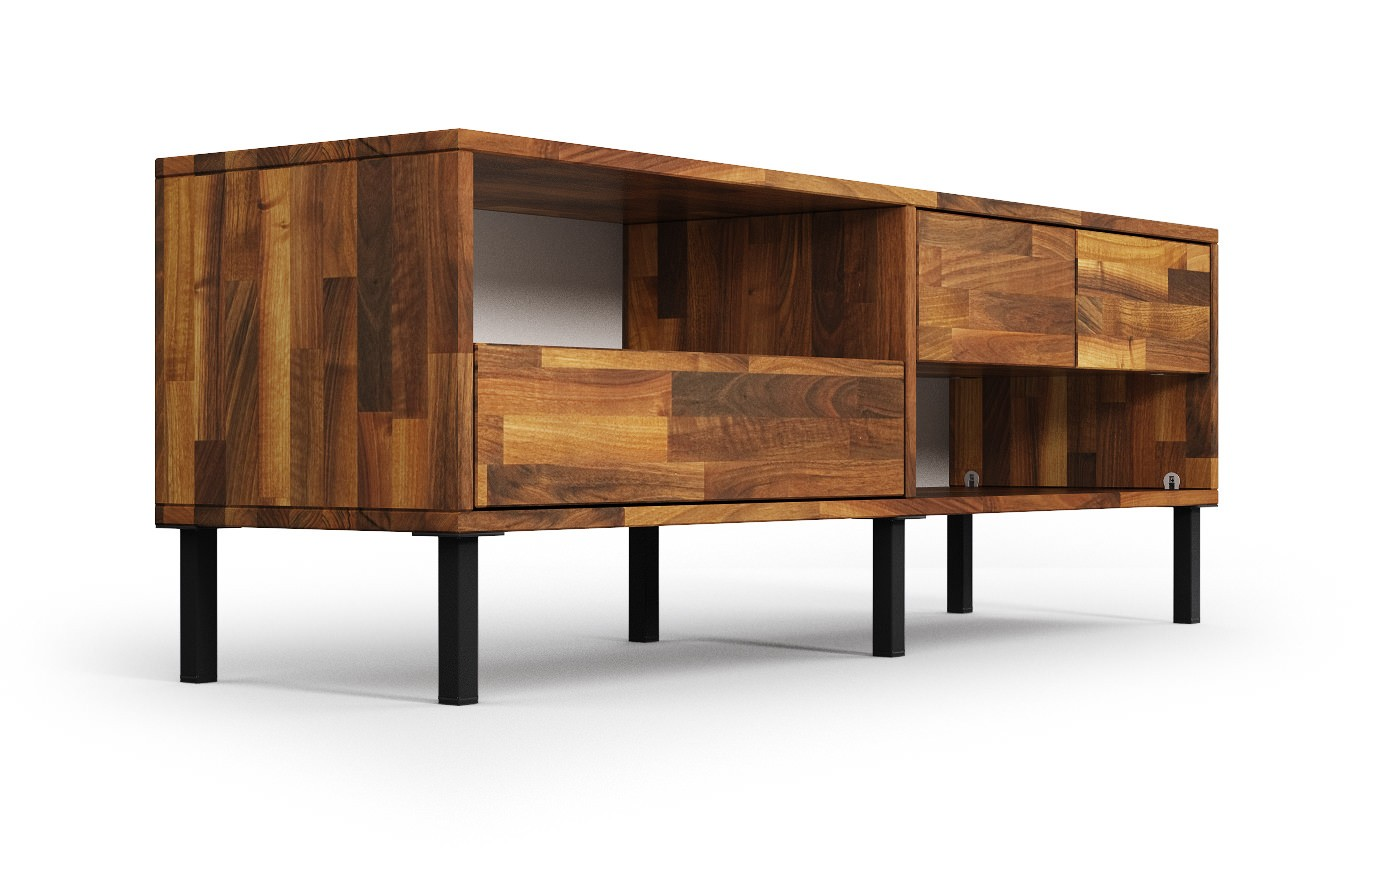 klaipeda in nussbaum hifi sideboard nach ma. Black Bedroom Furniture Sets. Home Design Ideas